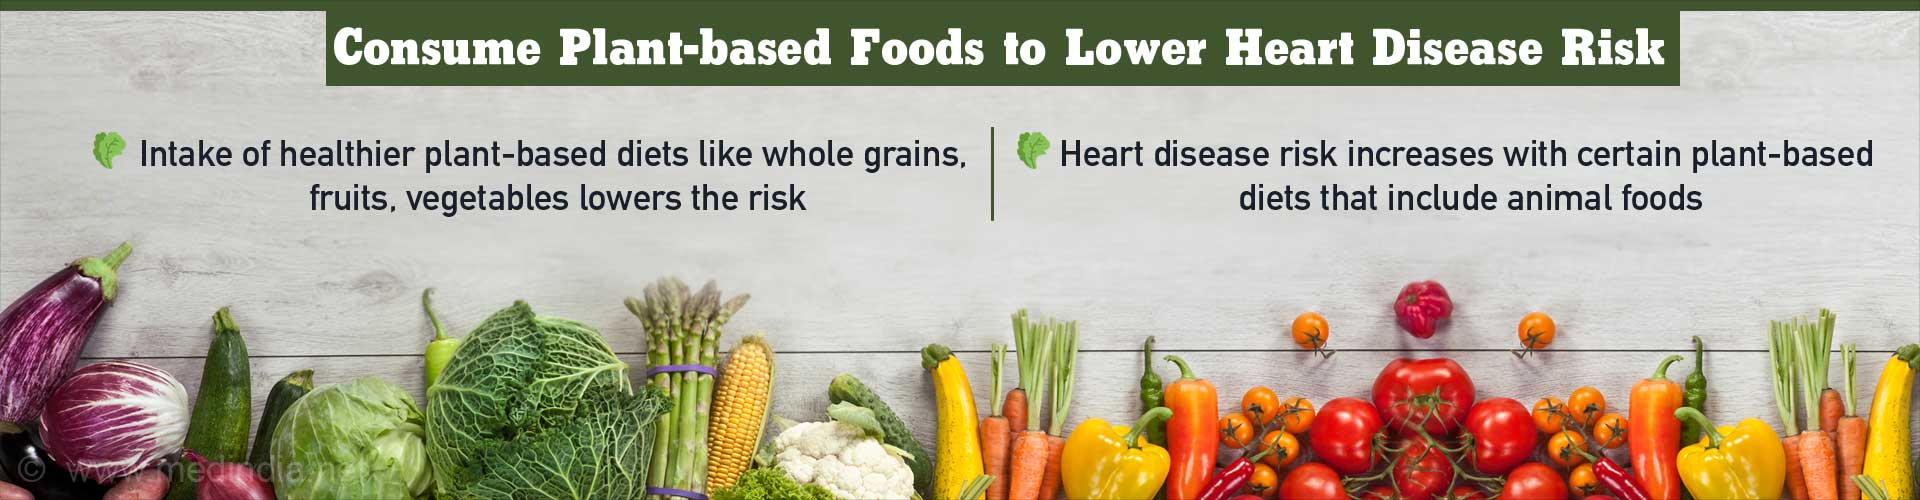 Not All Plant-Based Diets Are Equally Healthy